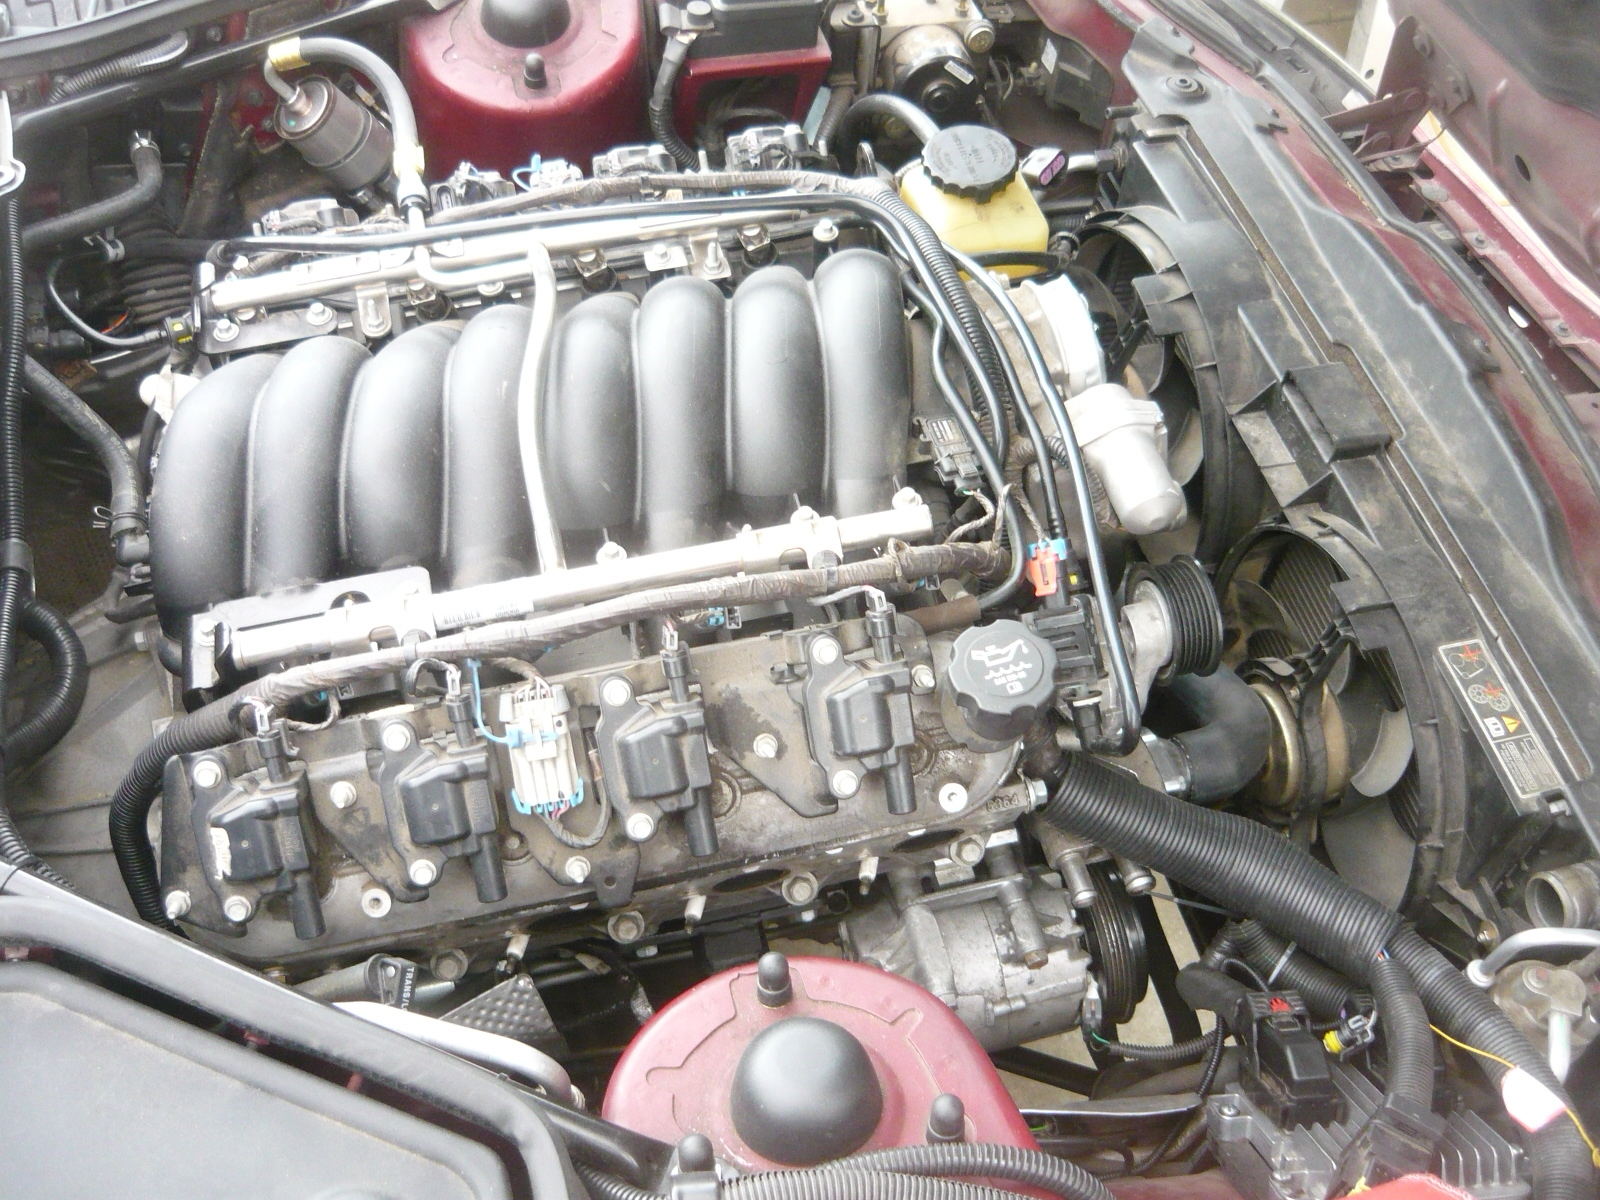 hight resolution of 1997 xk8 convertible with 2009 pontiac g8 l76 and 6l80e 6 speed automatic acquired 2017 and conversion in process